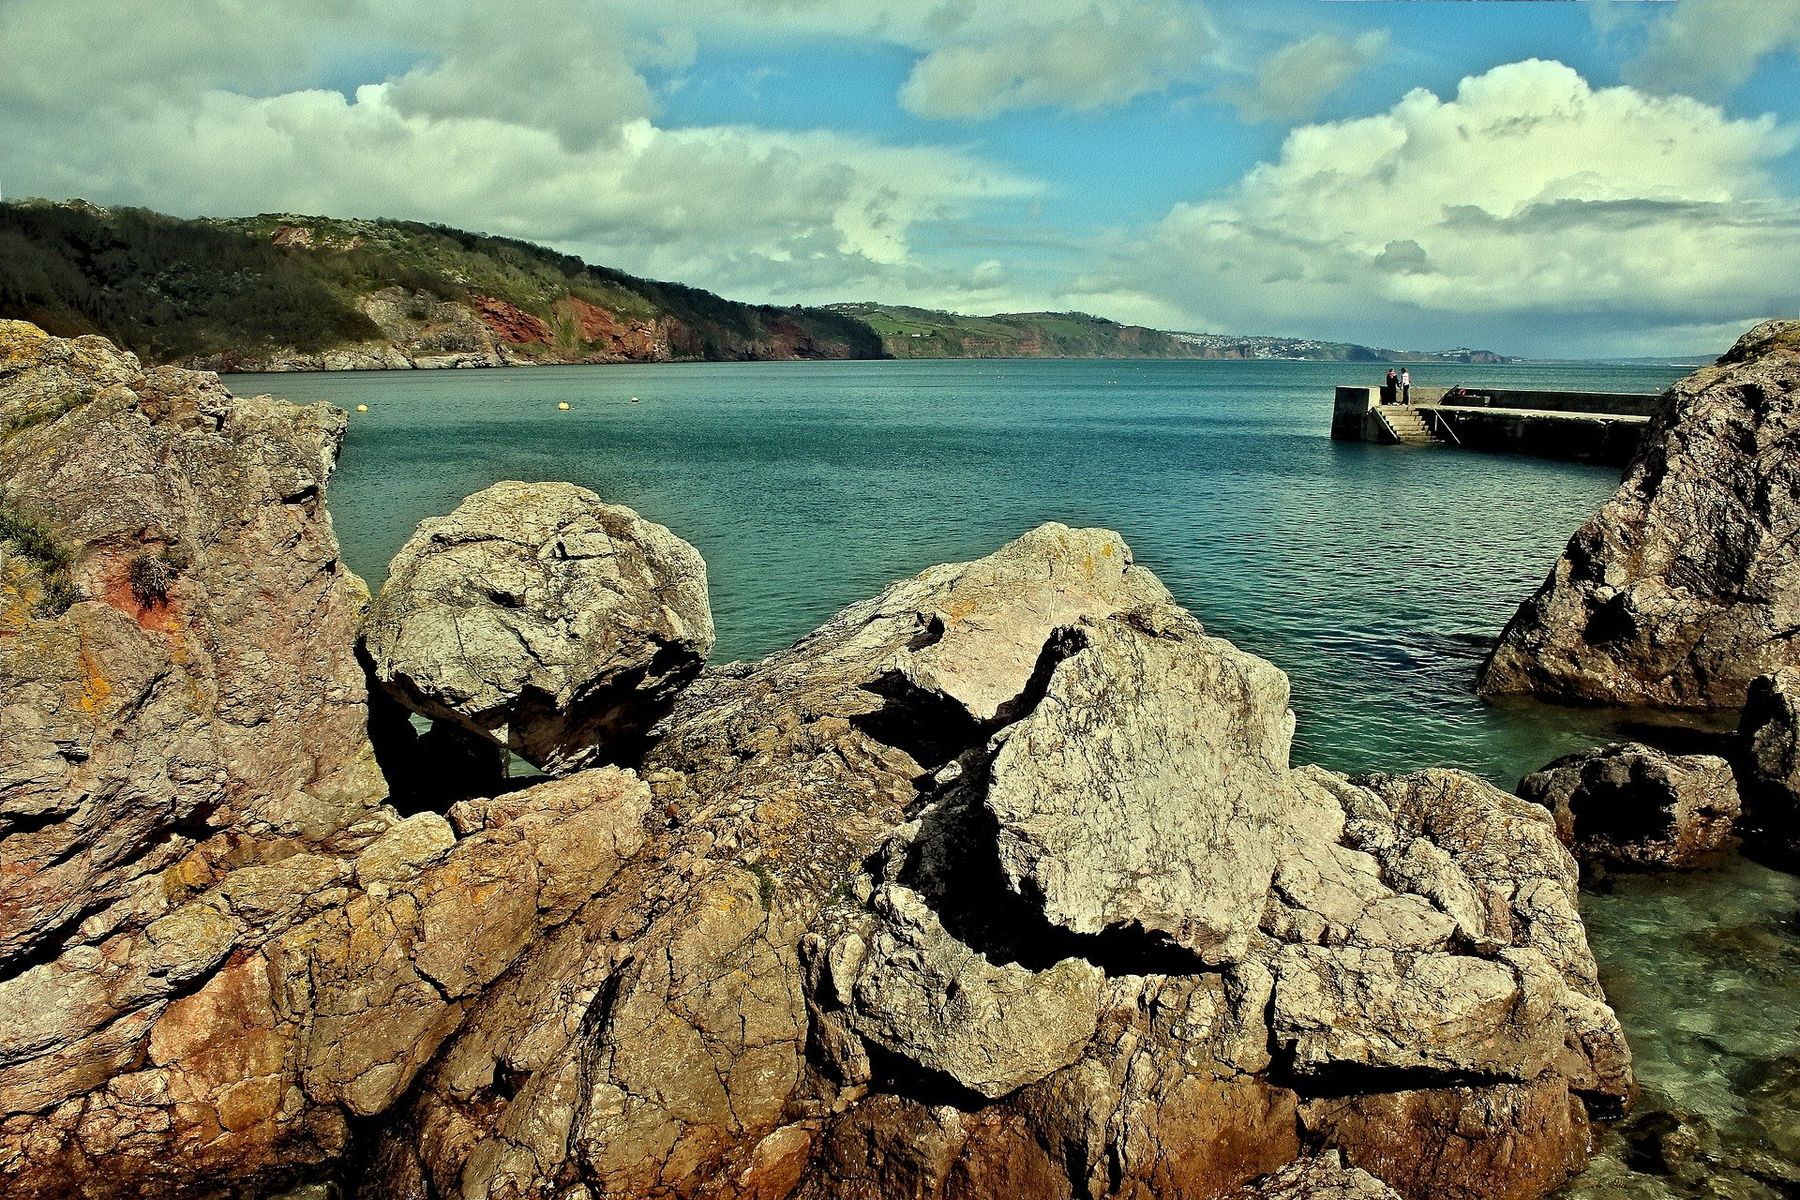 Babbacombe Beach in Torquay is the location of Cary Arms Hotel, one of the best beach hotels in England